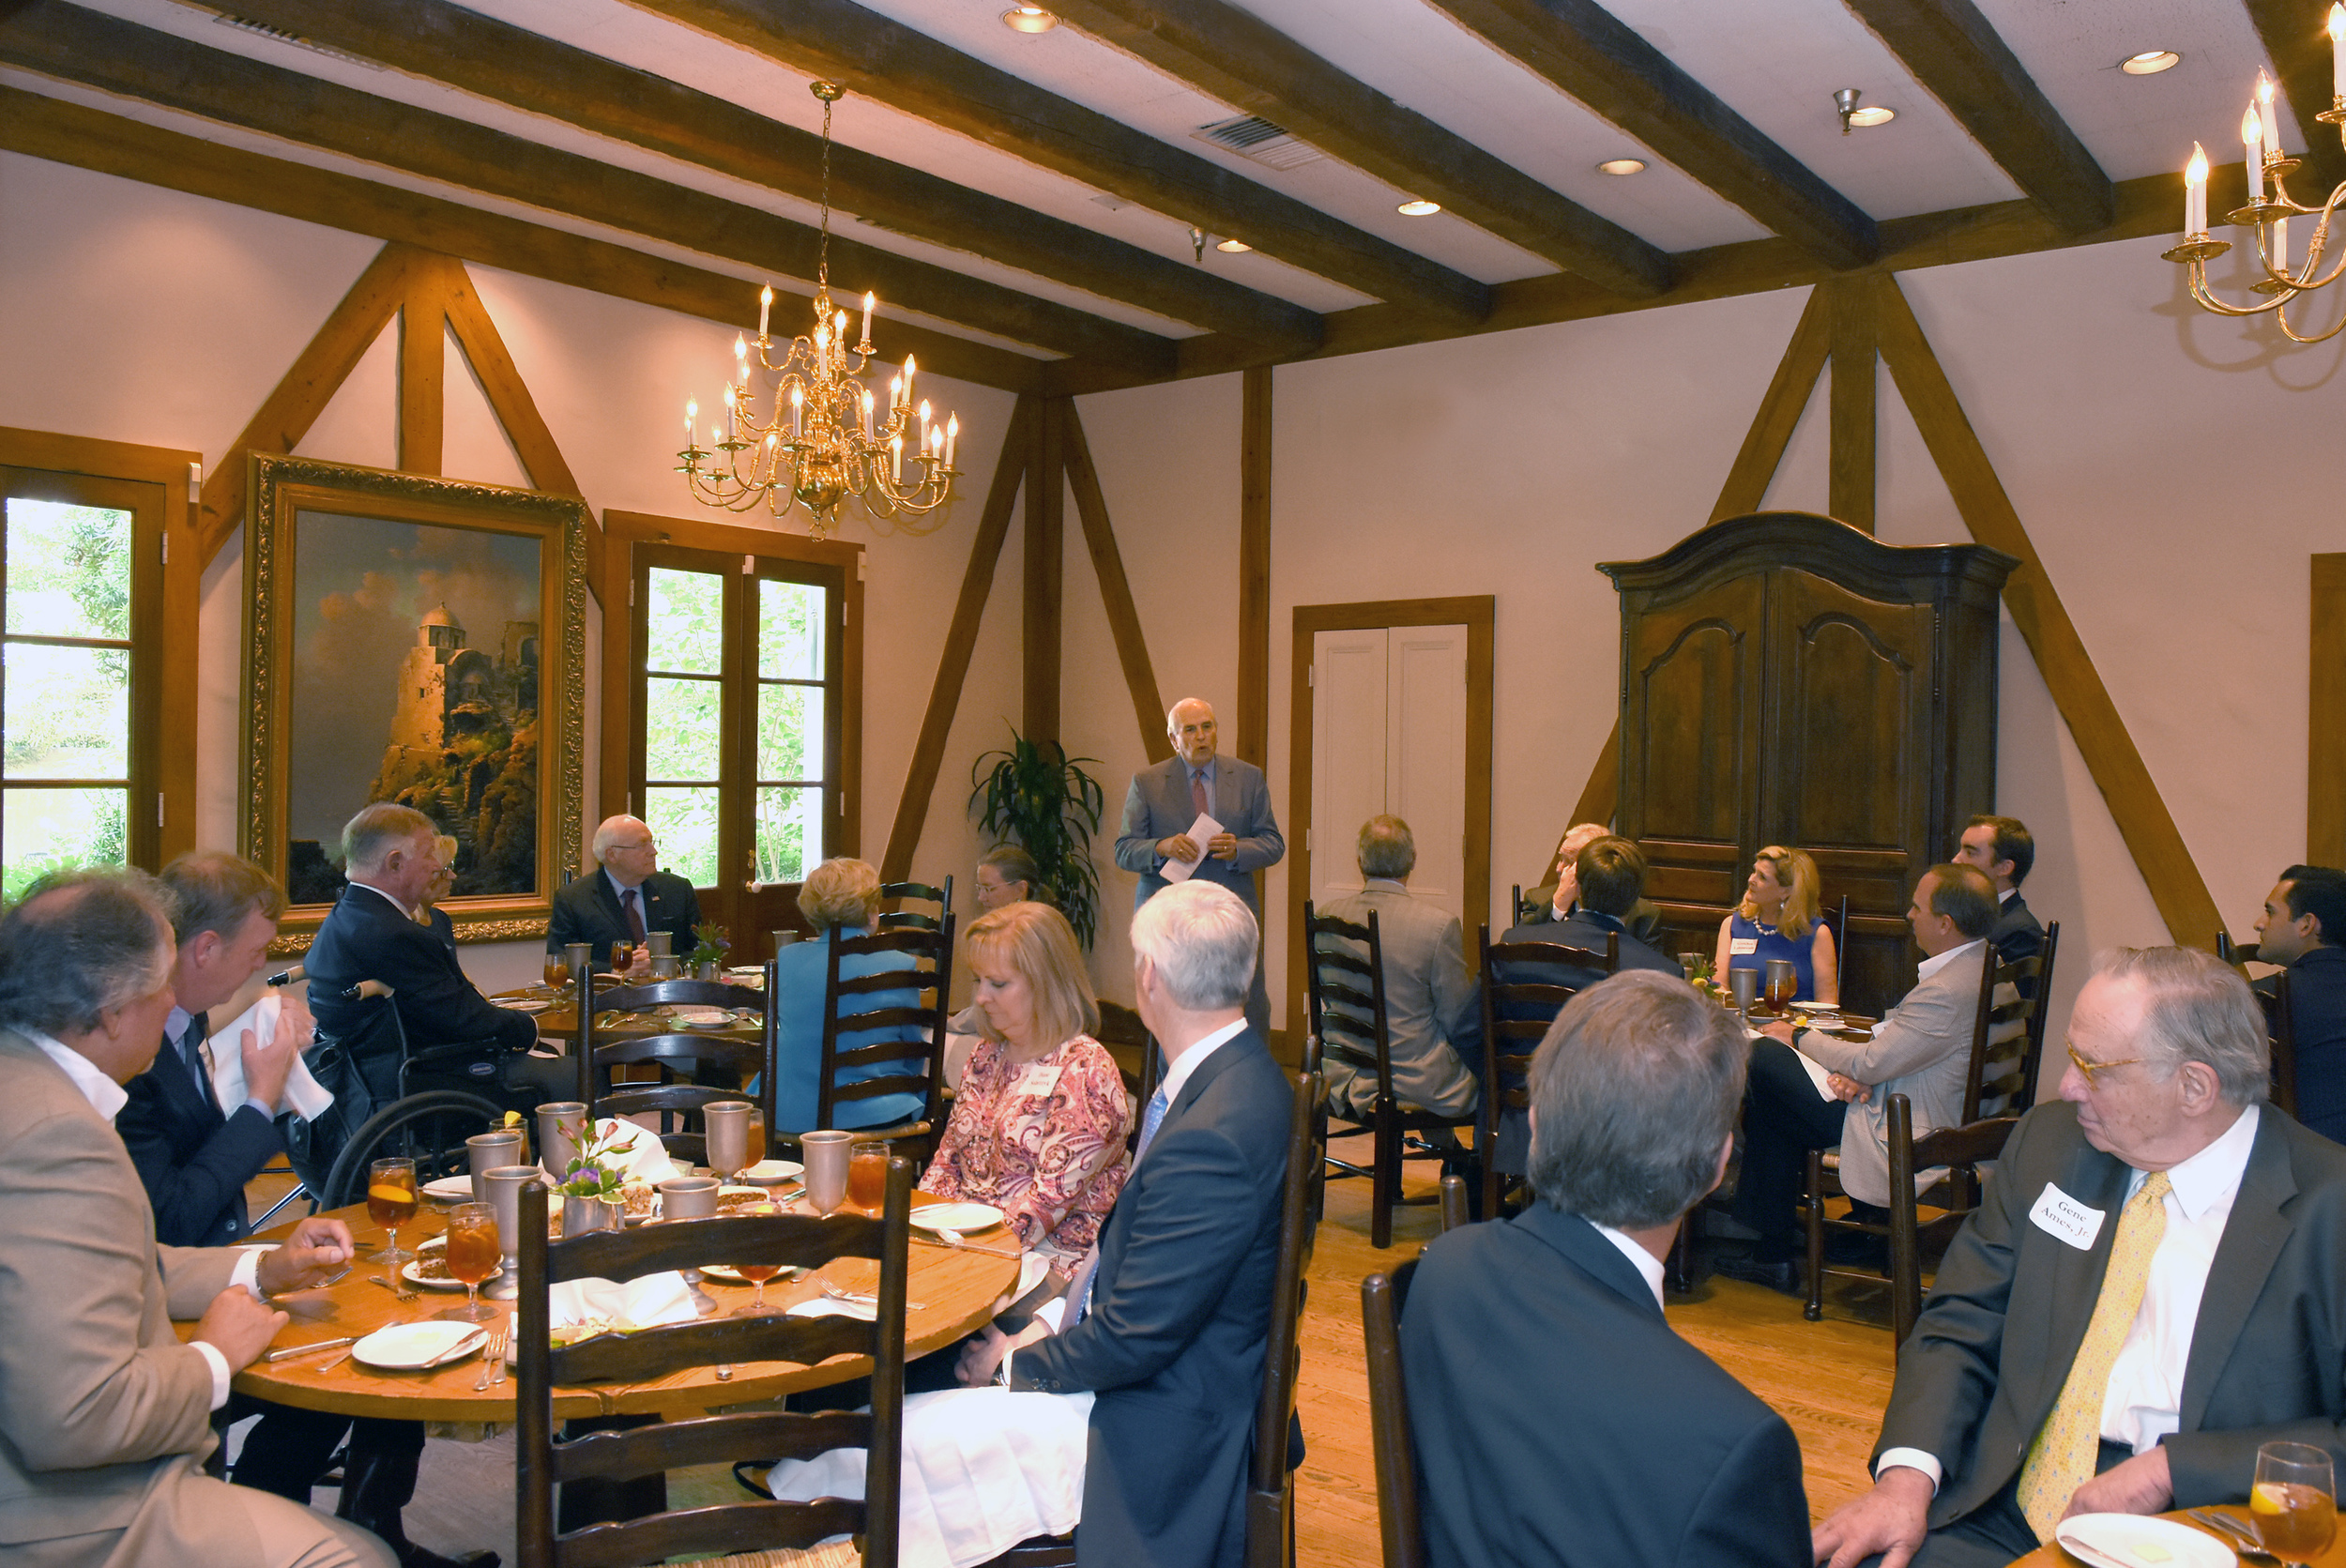 A Liz Cheney for Wyoming fundraiser lunch with Liz Cheney and Vice President Dick Cheney in San Antonio in 2016.